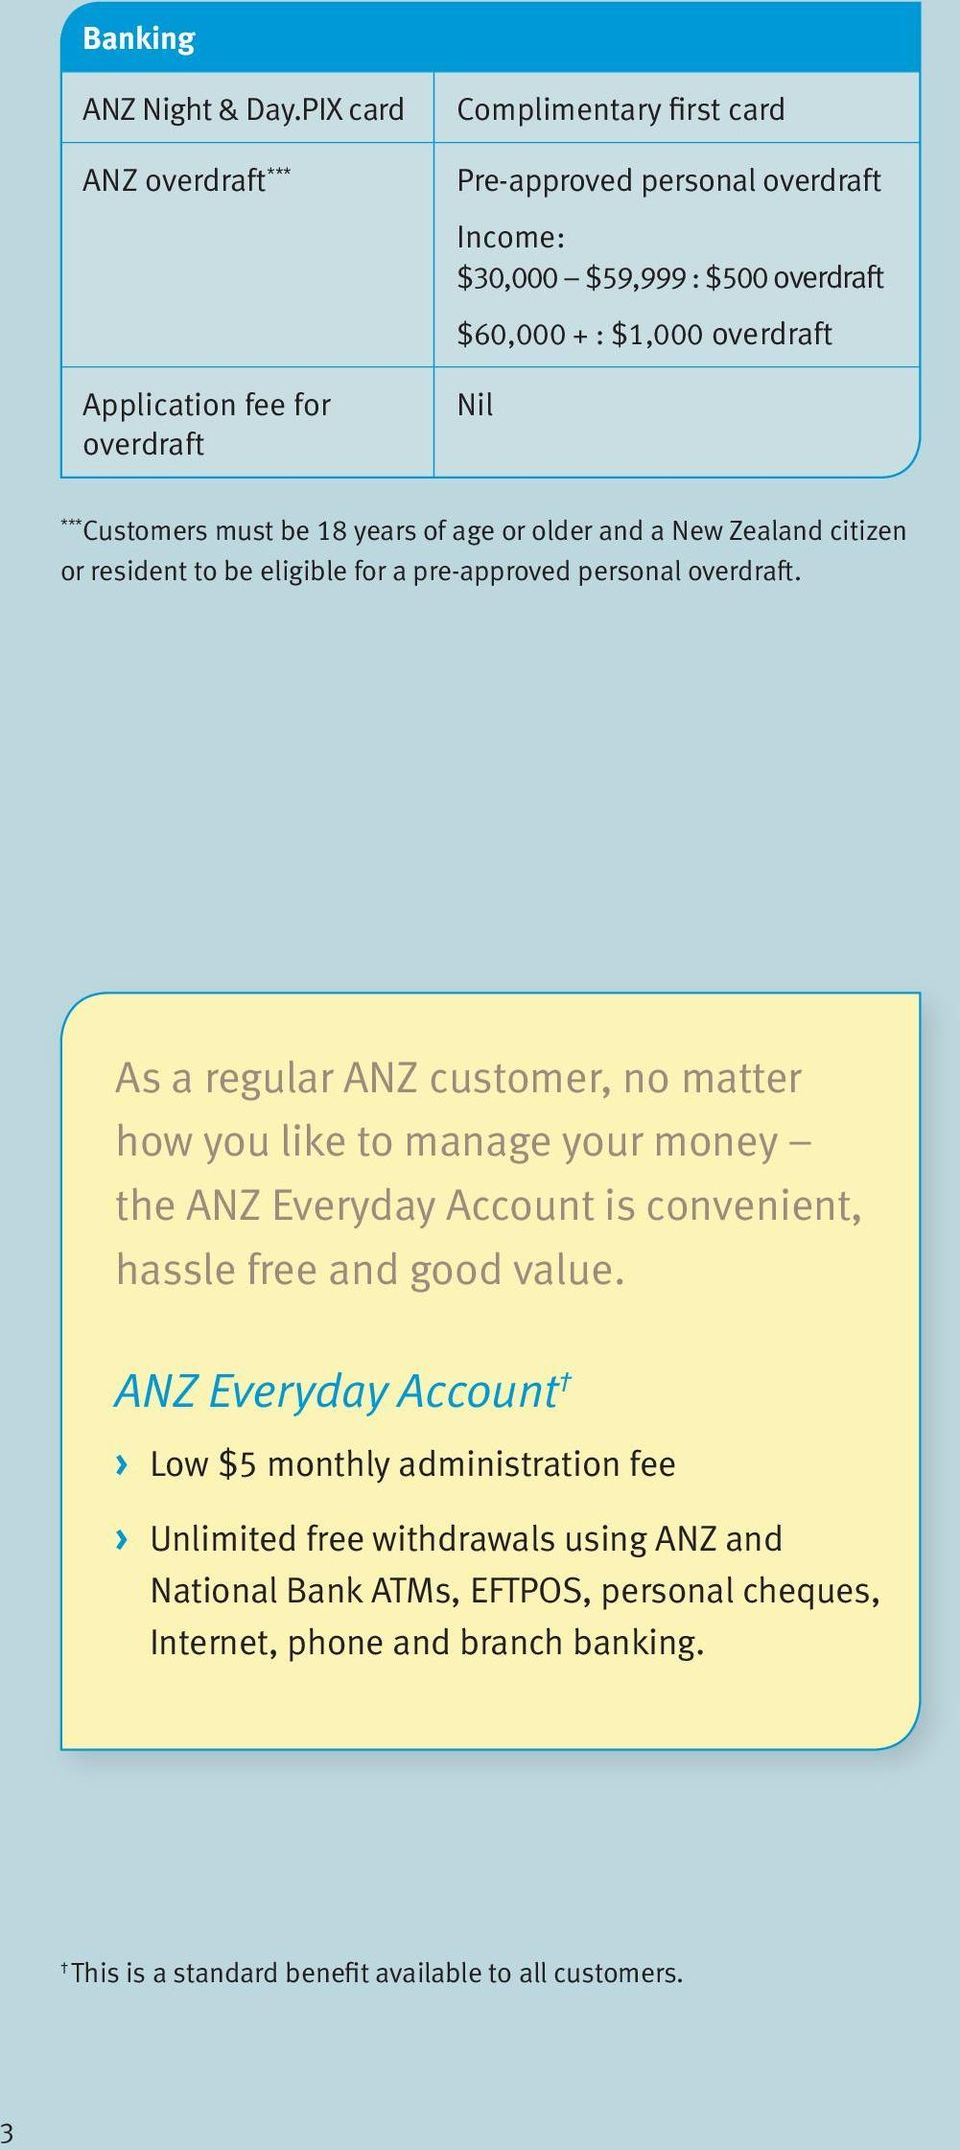 overdraft Nil *** Customers must be 18 years of age or older and a New Zealand citizen or resident to be eligible for a pre-approved personal overdraft.